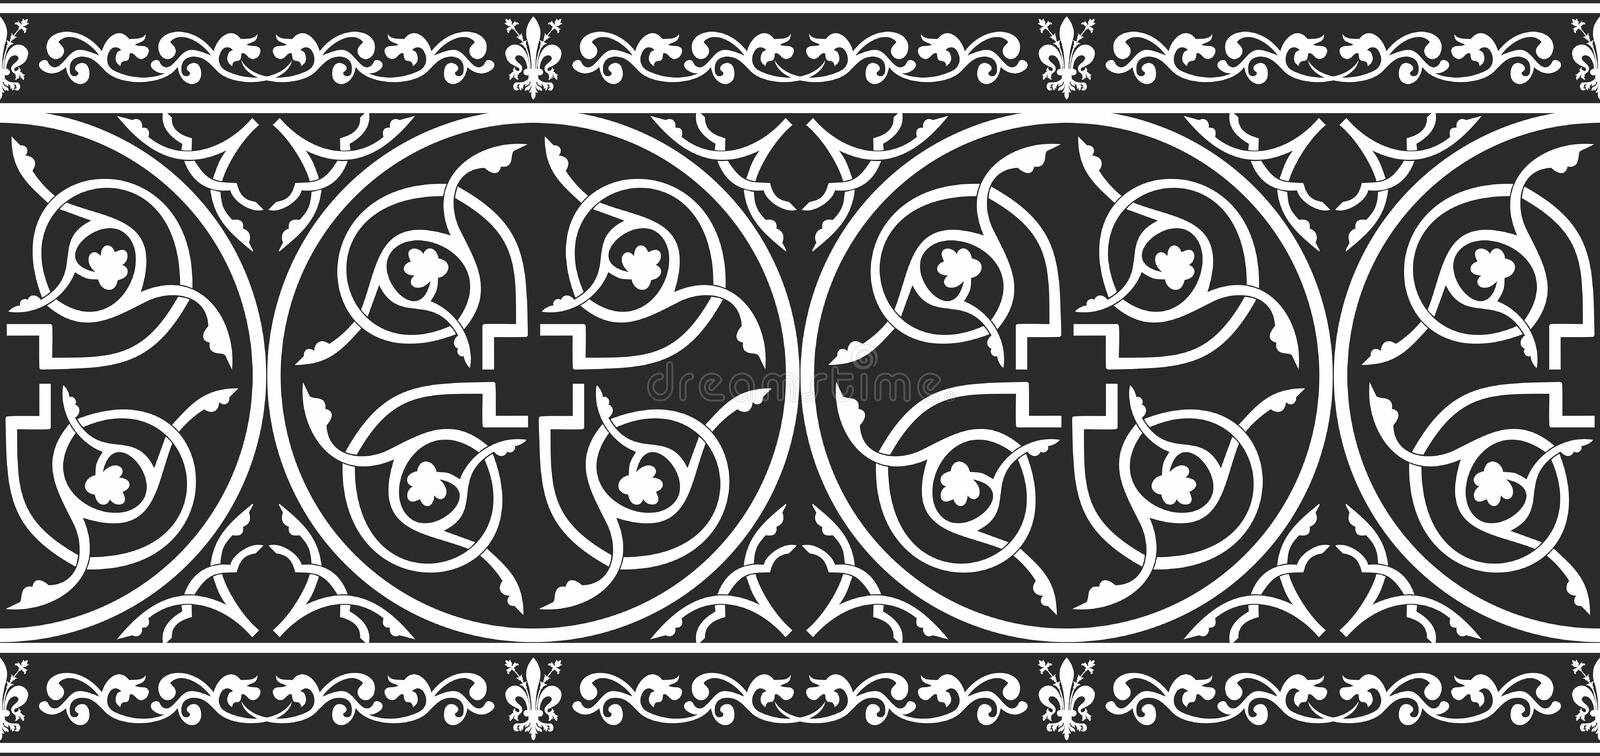 Seamless black-and-white gothic floral border royalty free illustration